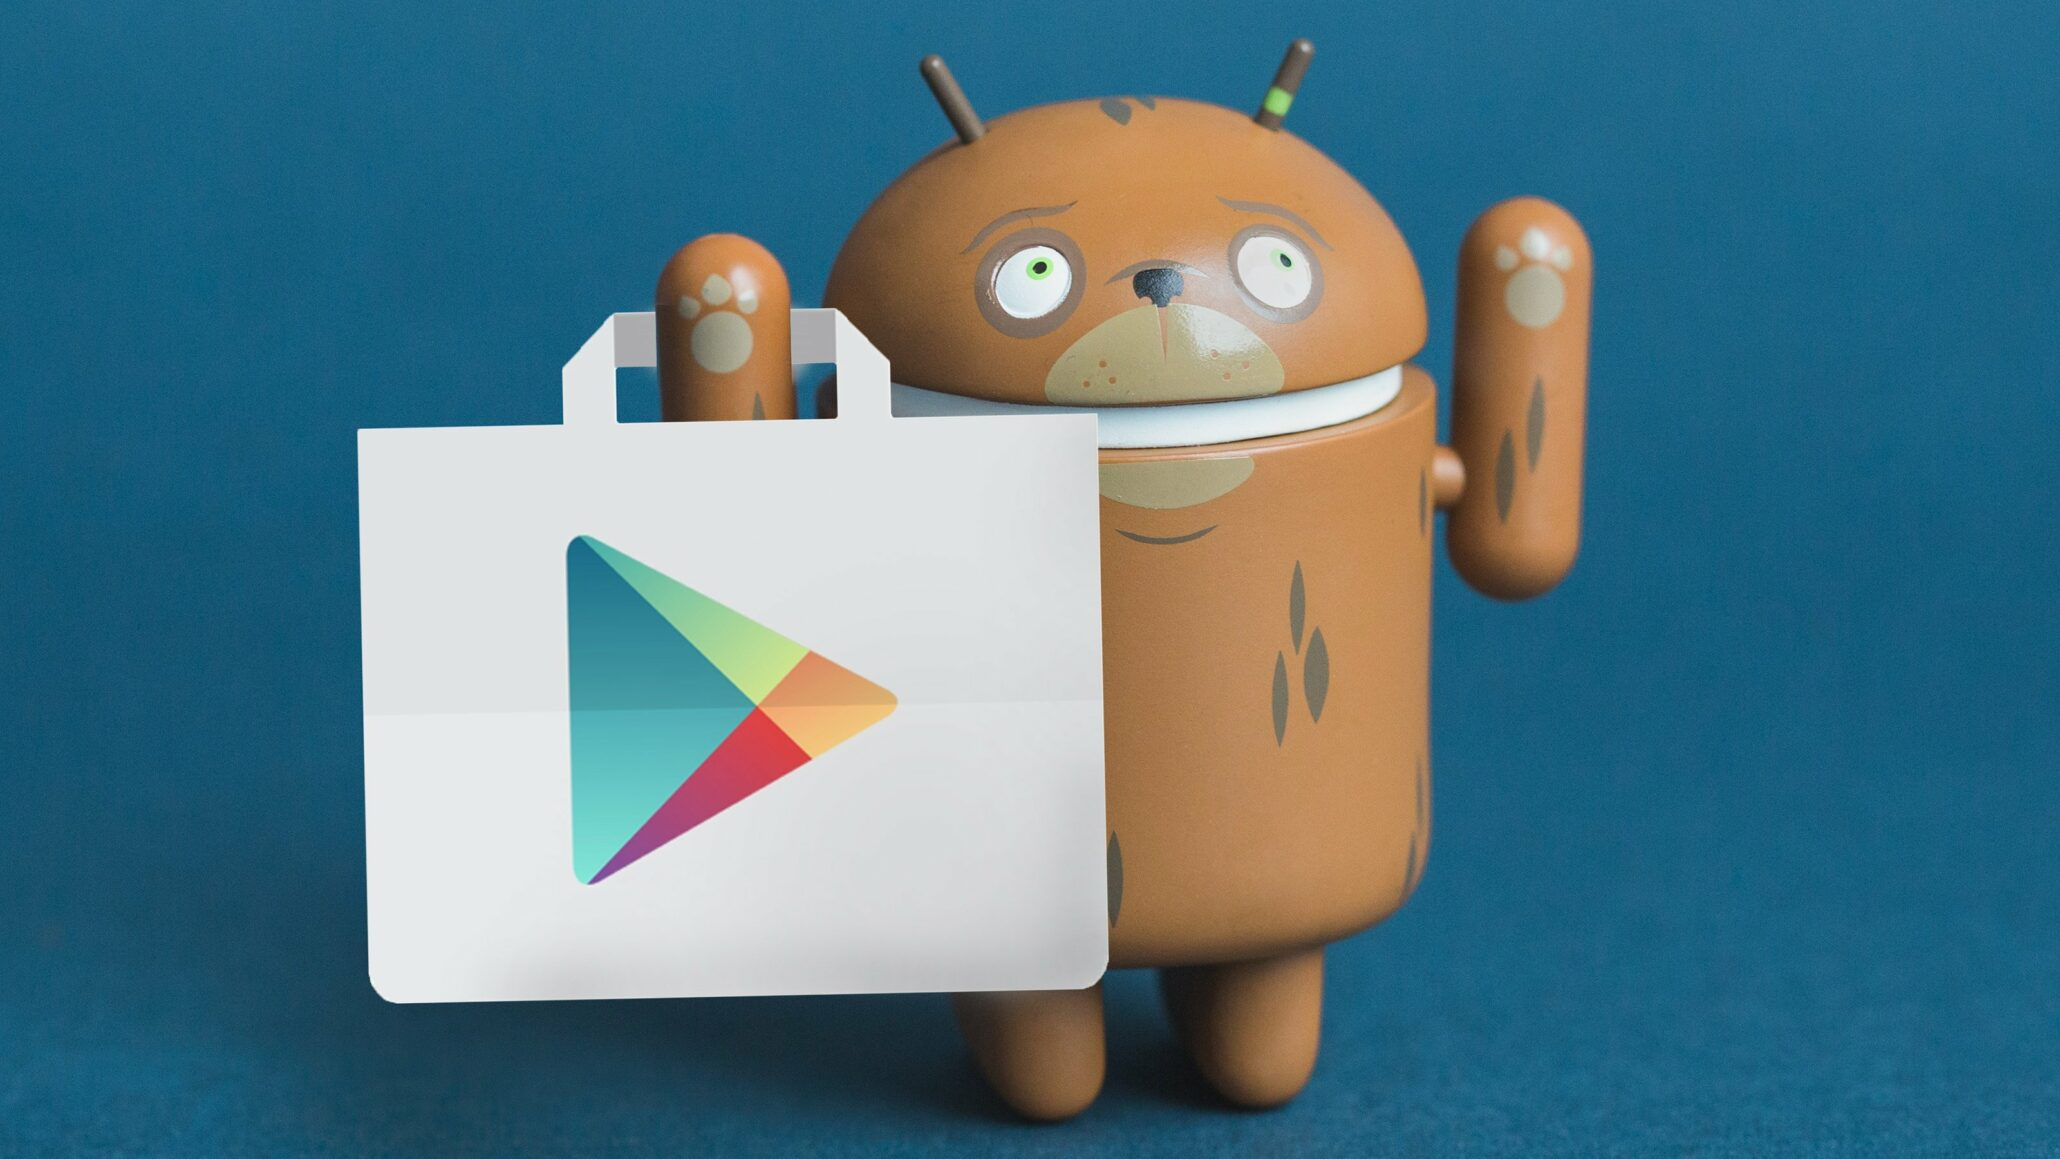 download google play store apk terbaru 2018